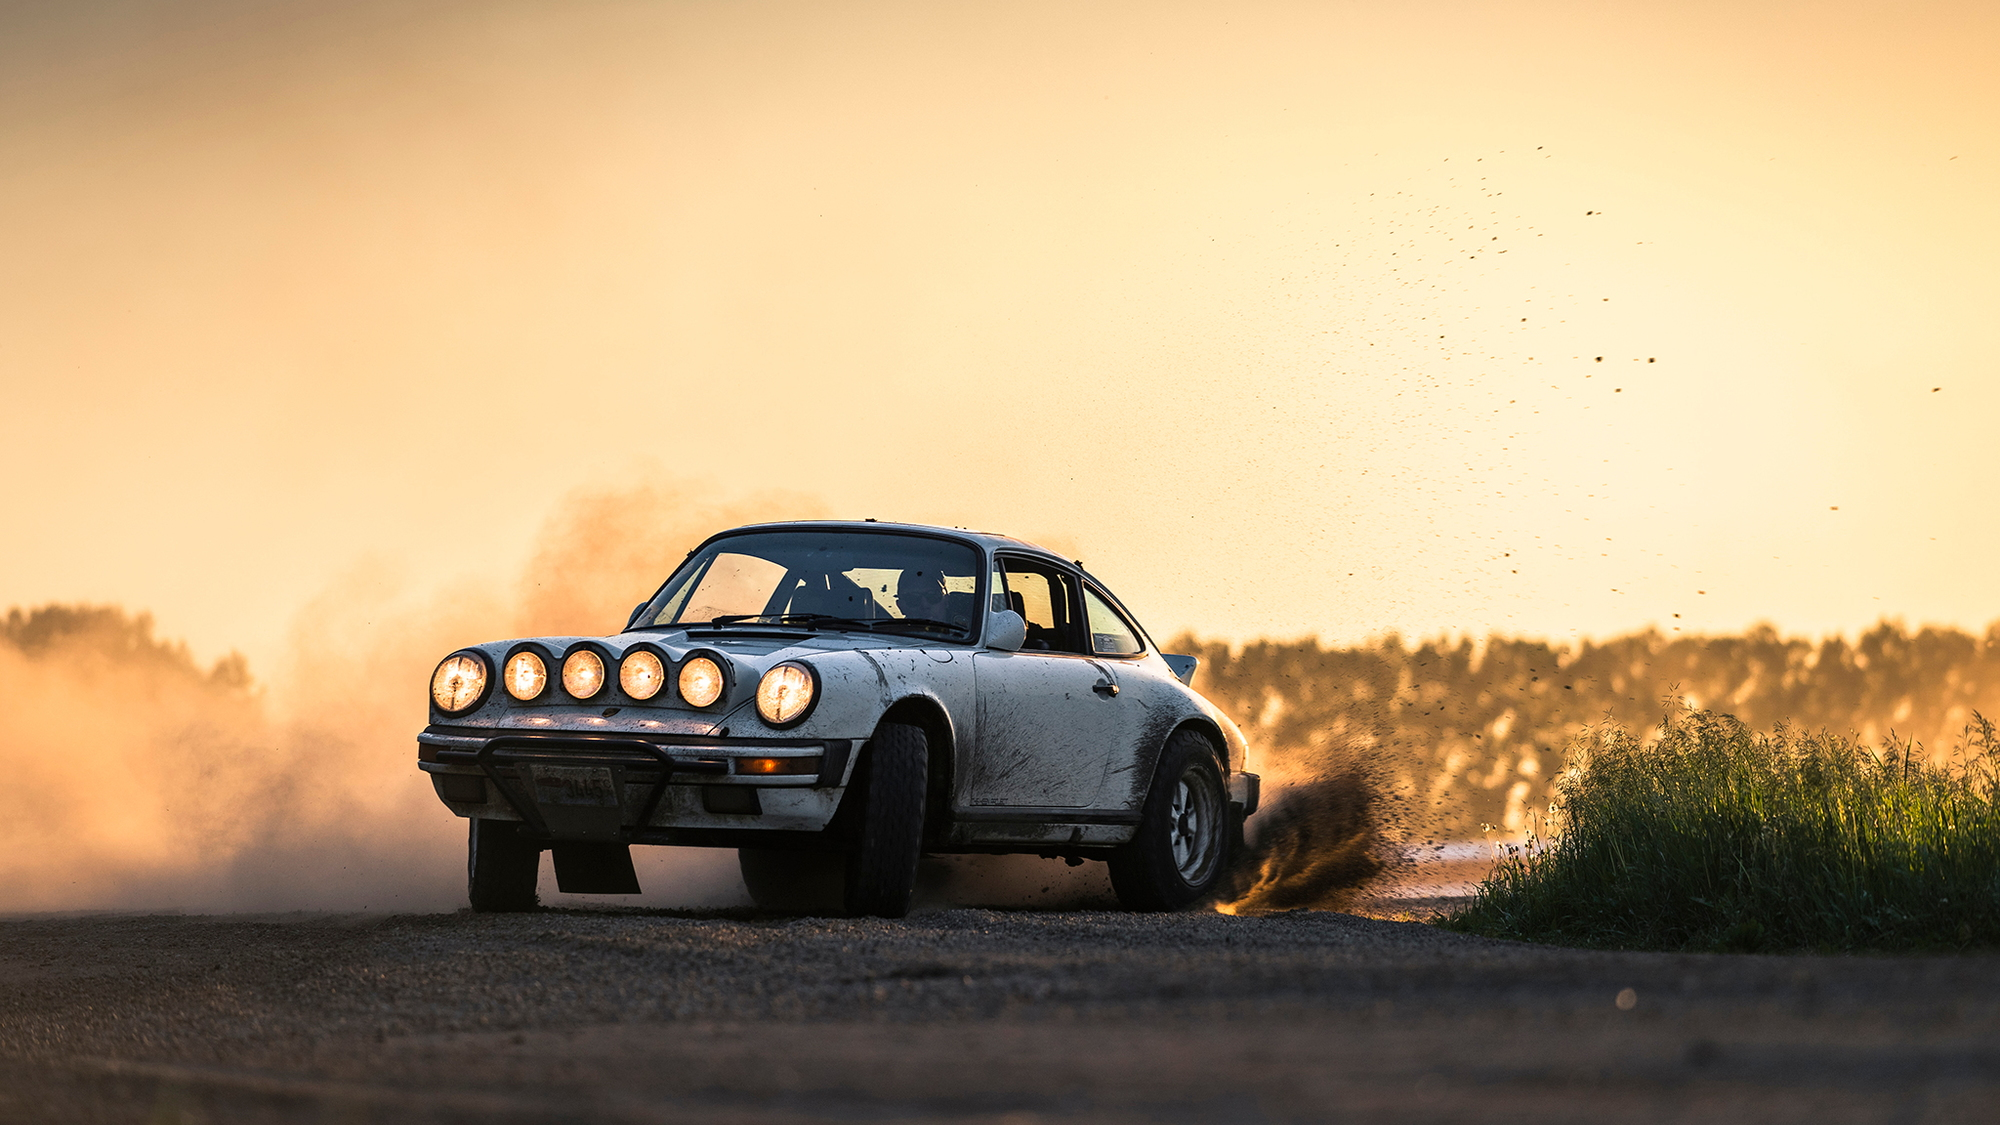 The Keen Project Safari 911 No. 2, photo by Alex Bellus